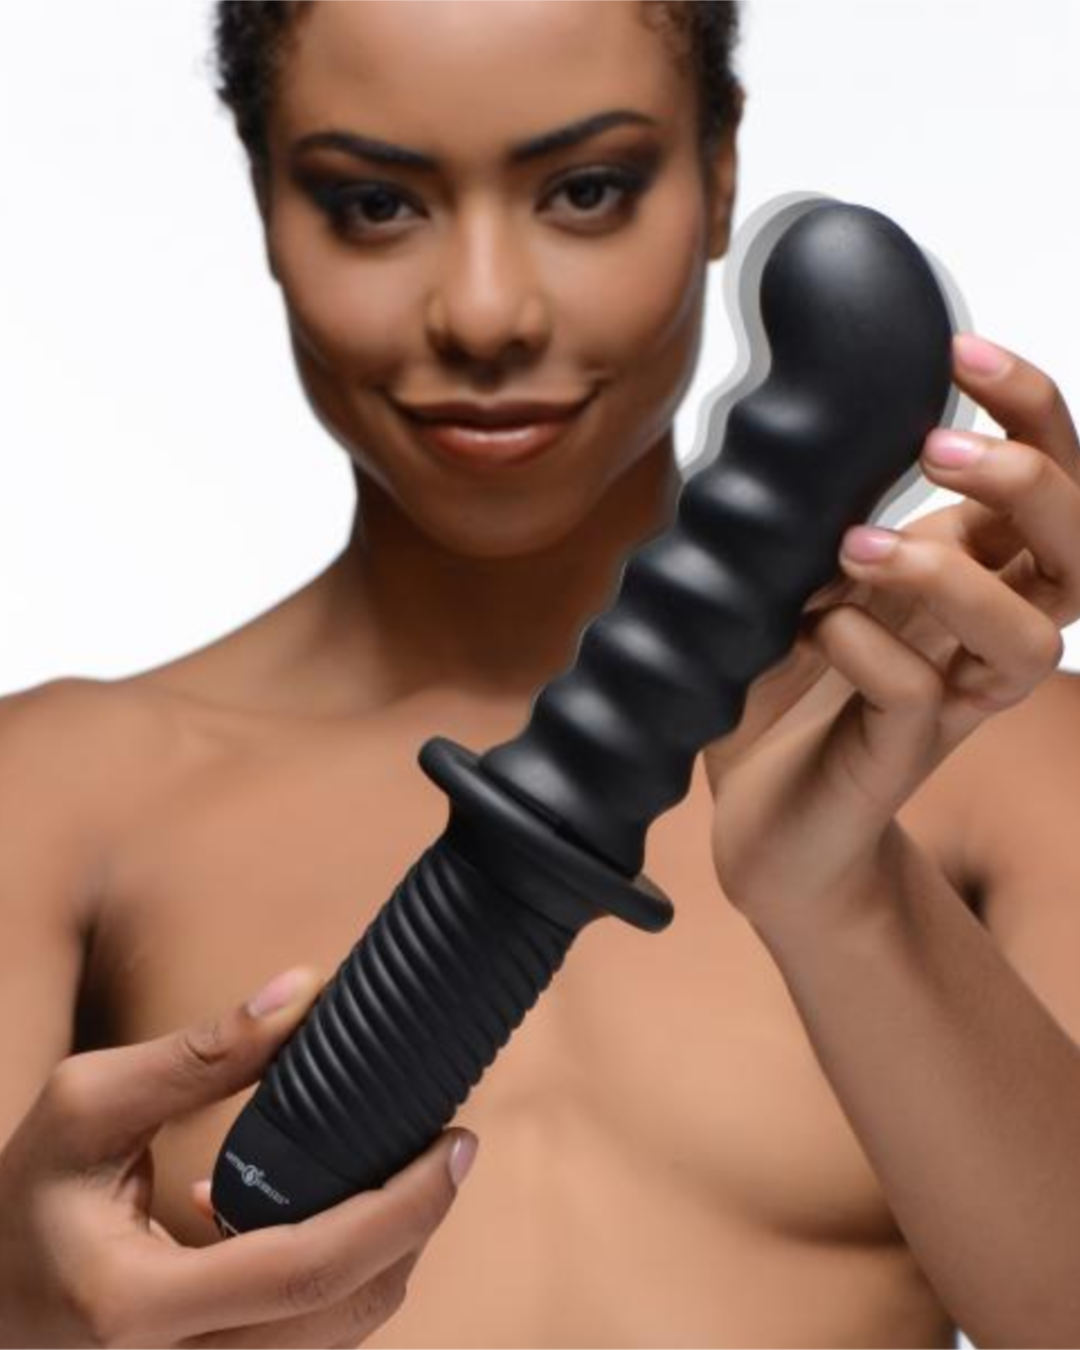 The Skew 10X Silicone Ass Thumper Vibrator With Handle  female model holding toy